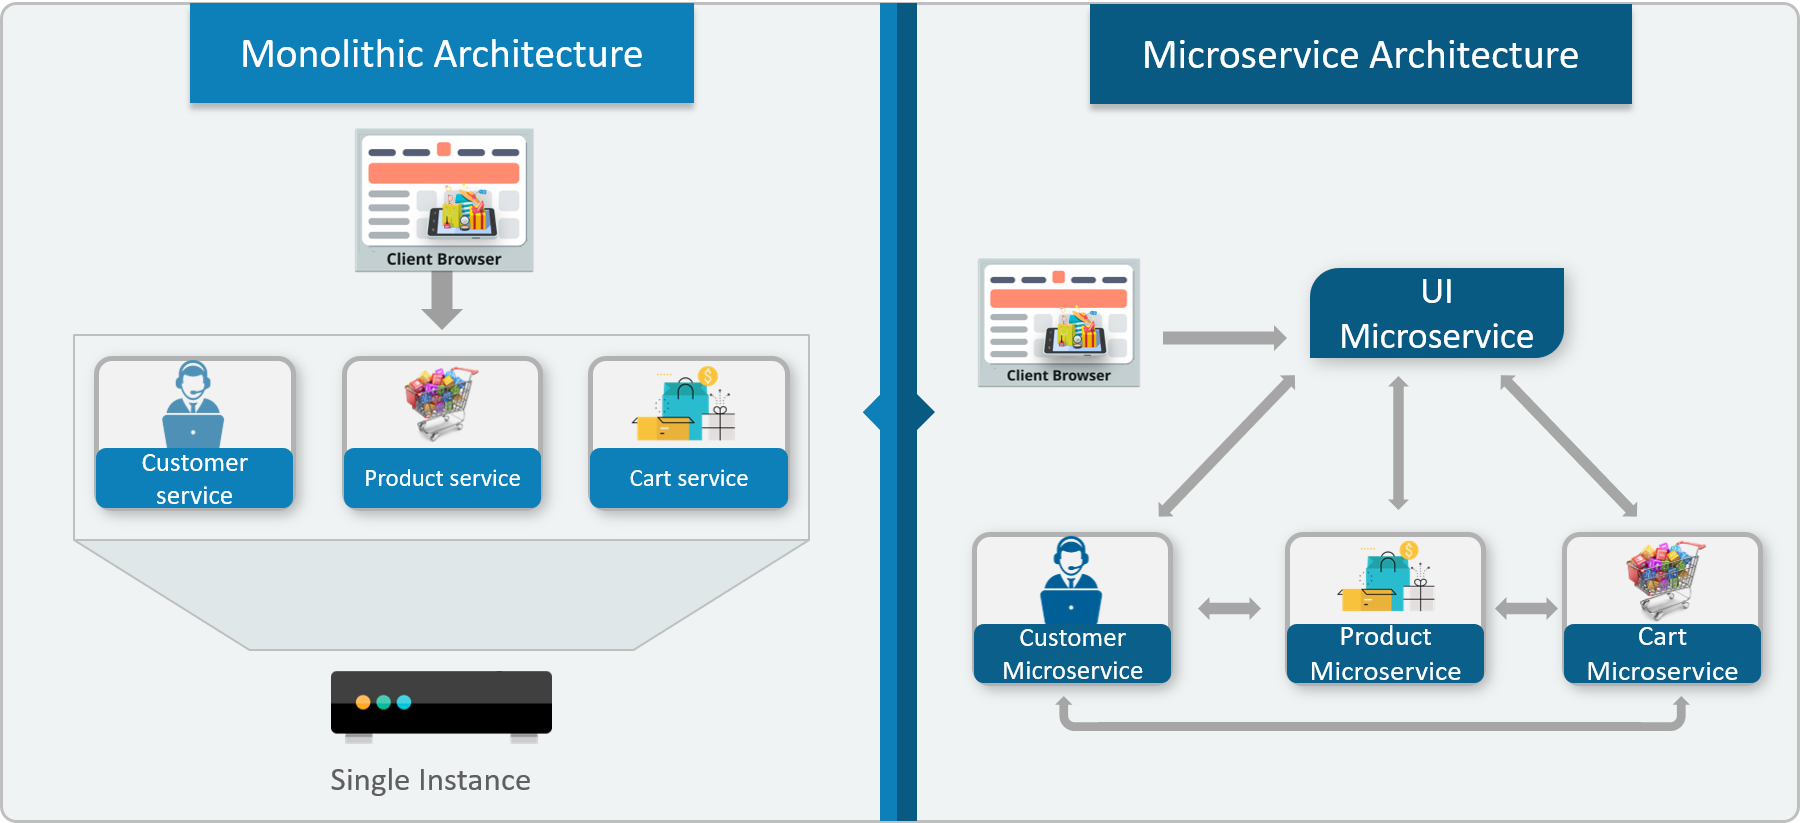 What is the microservices architecture? How can I learn